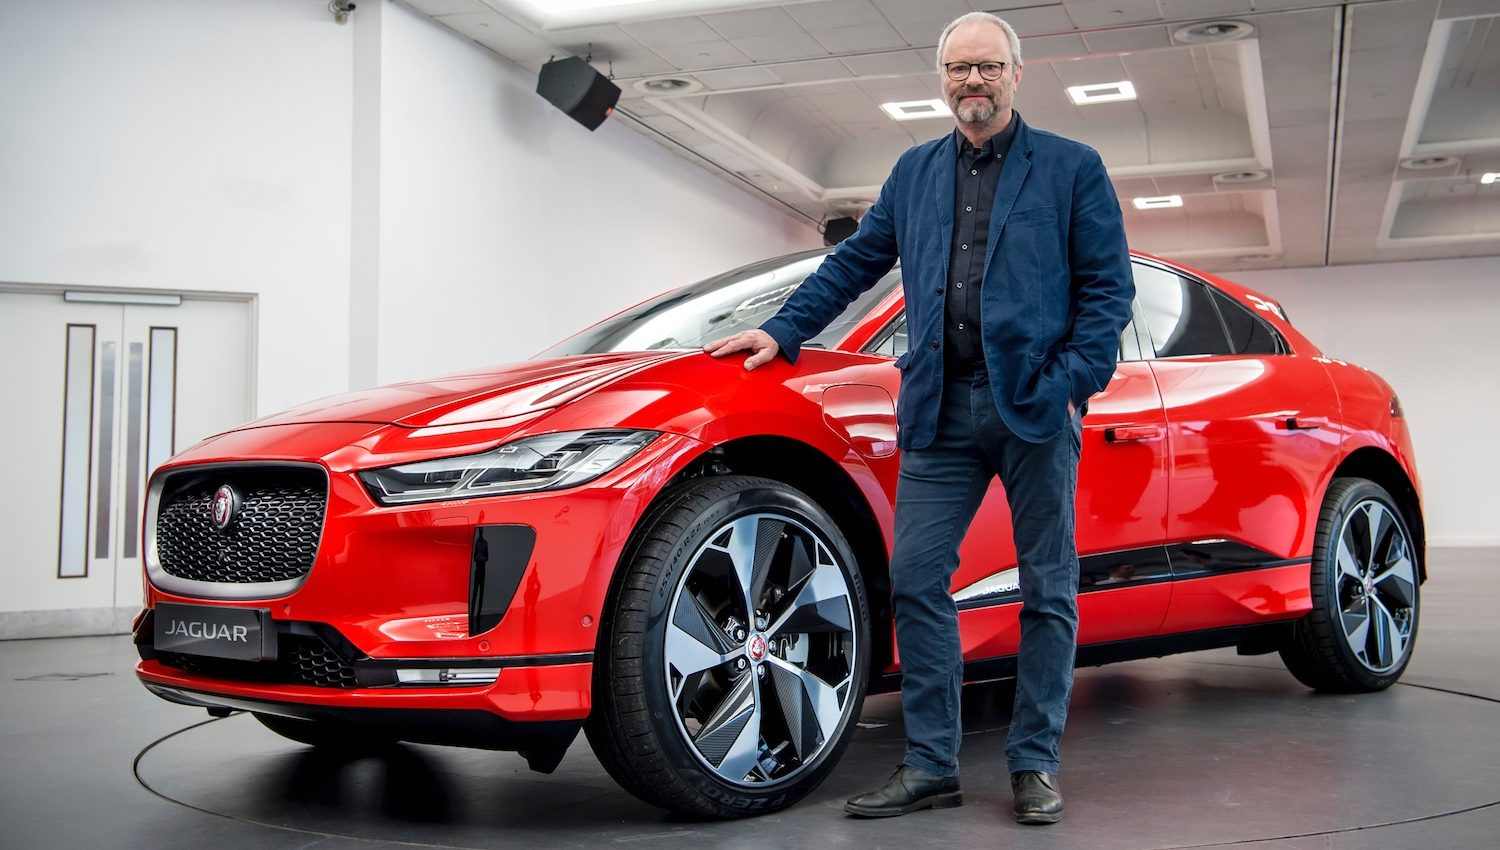 Jaguar I-PACE to be centre stage at Fully Charged LIVE